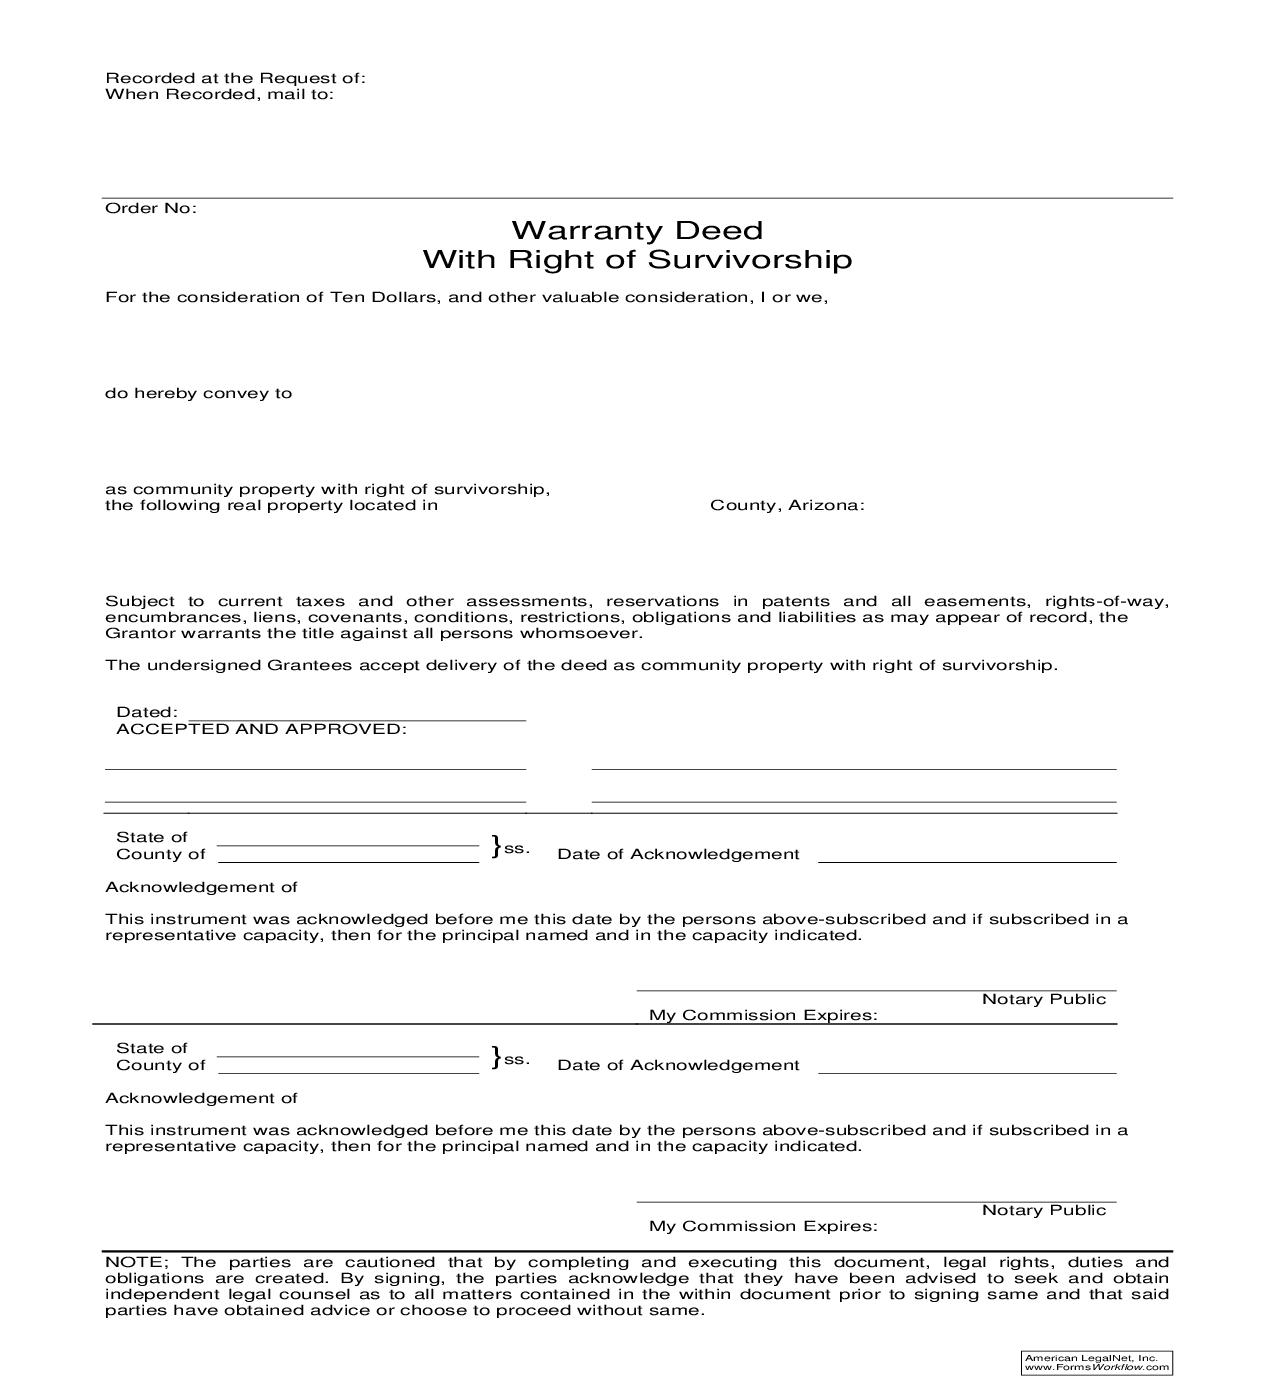 Warranty Deed With Right Of Survivorship | Pdf Fpdf Doc Docx | Sandberg Phoenix